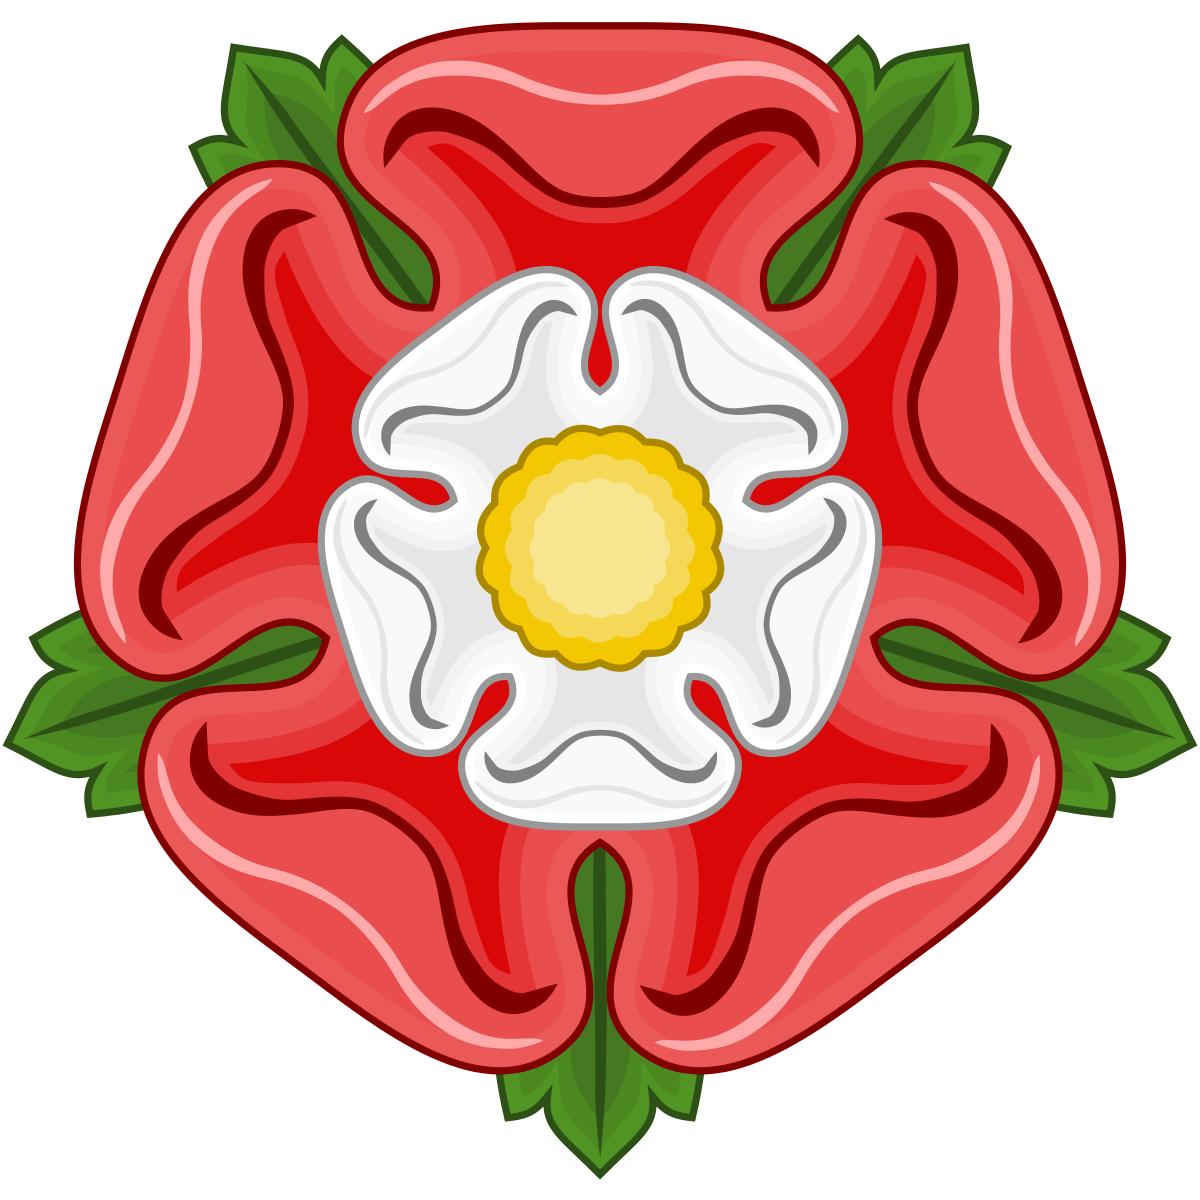 Clipart roses dying. House of tudor wikipedia